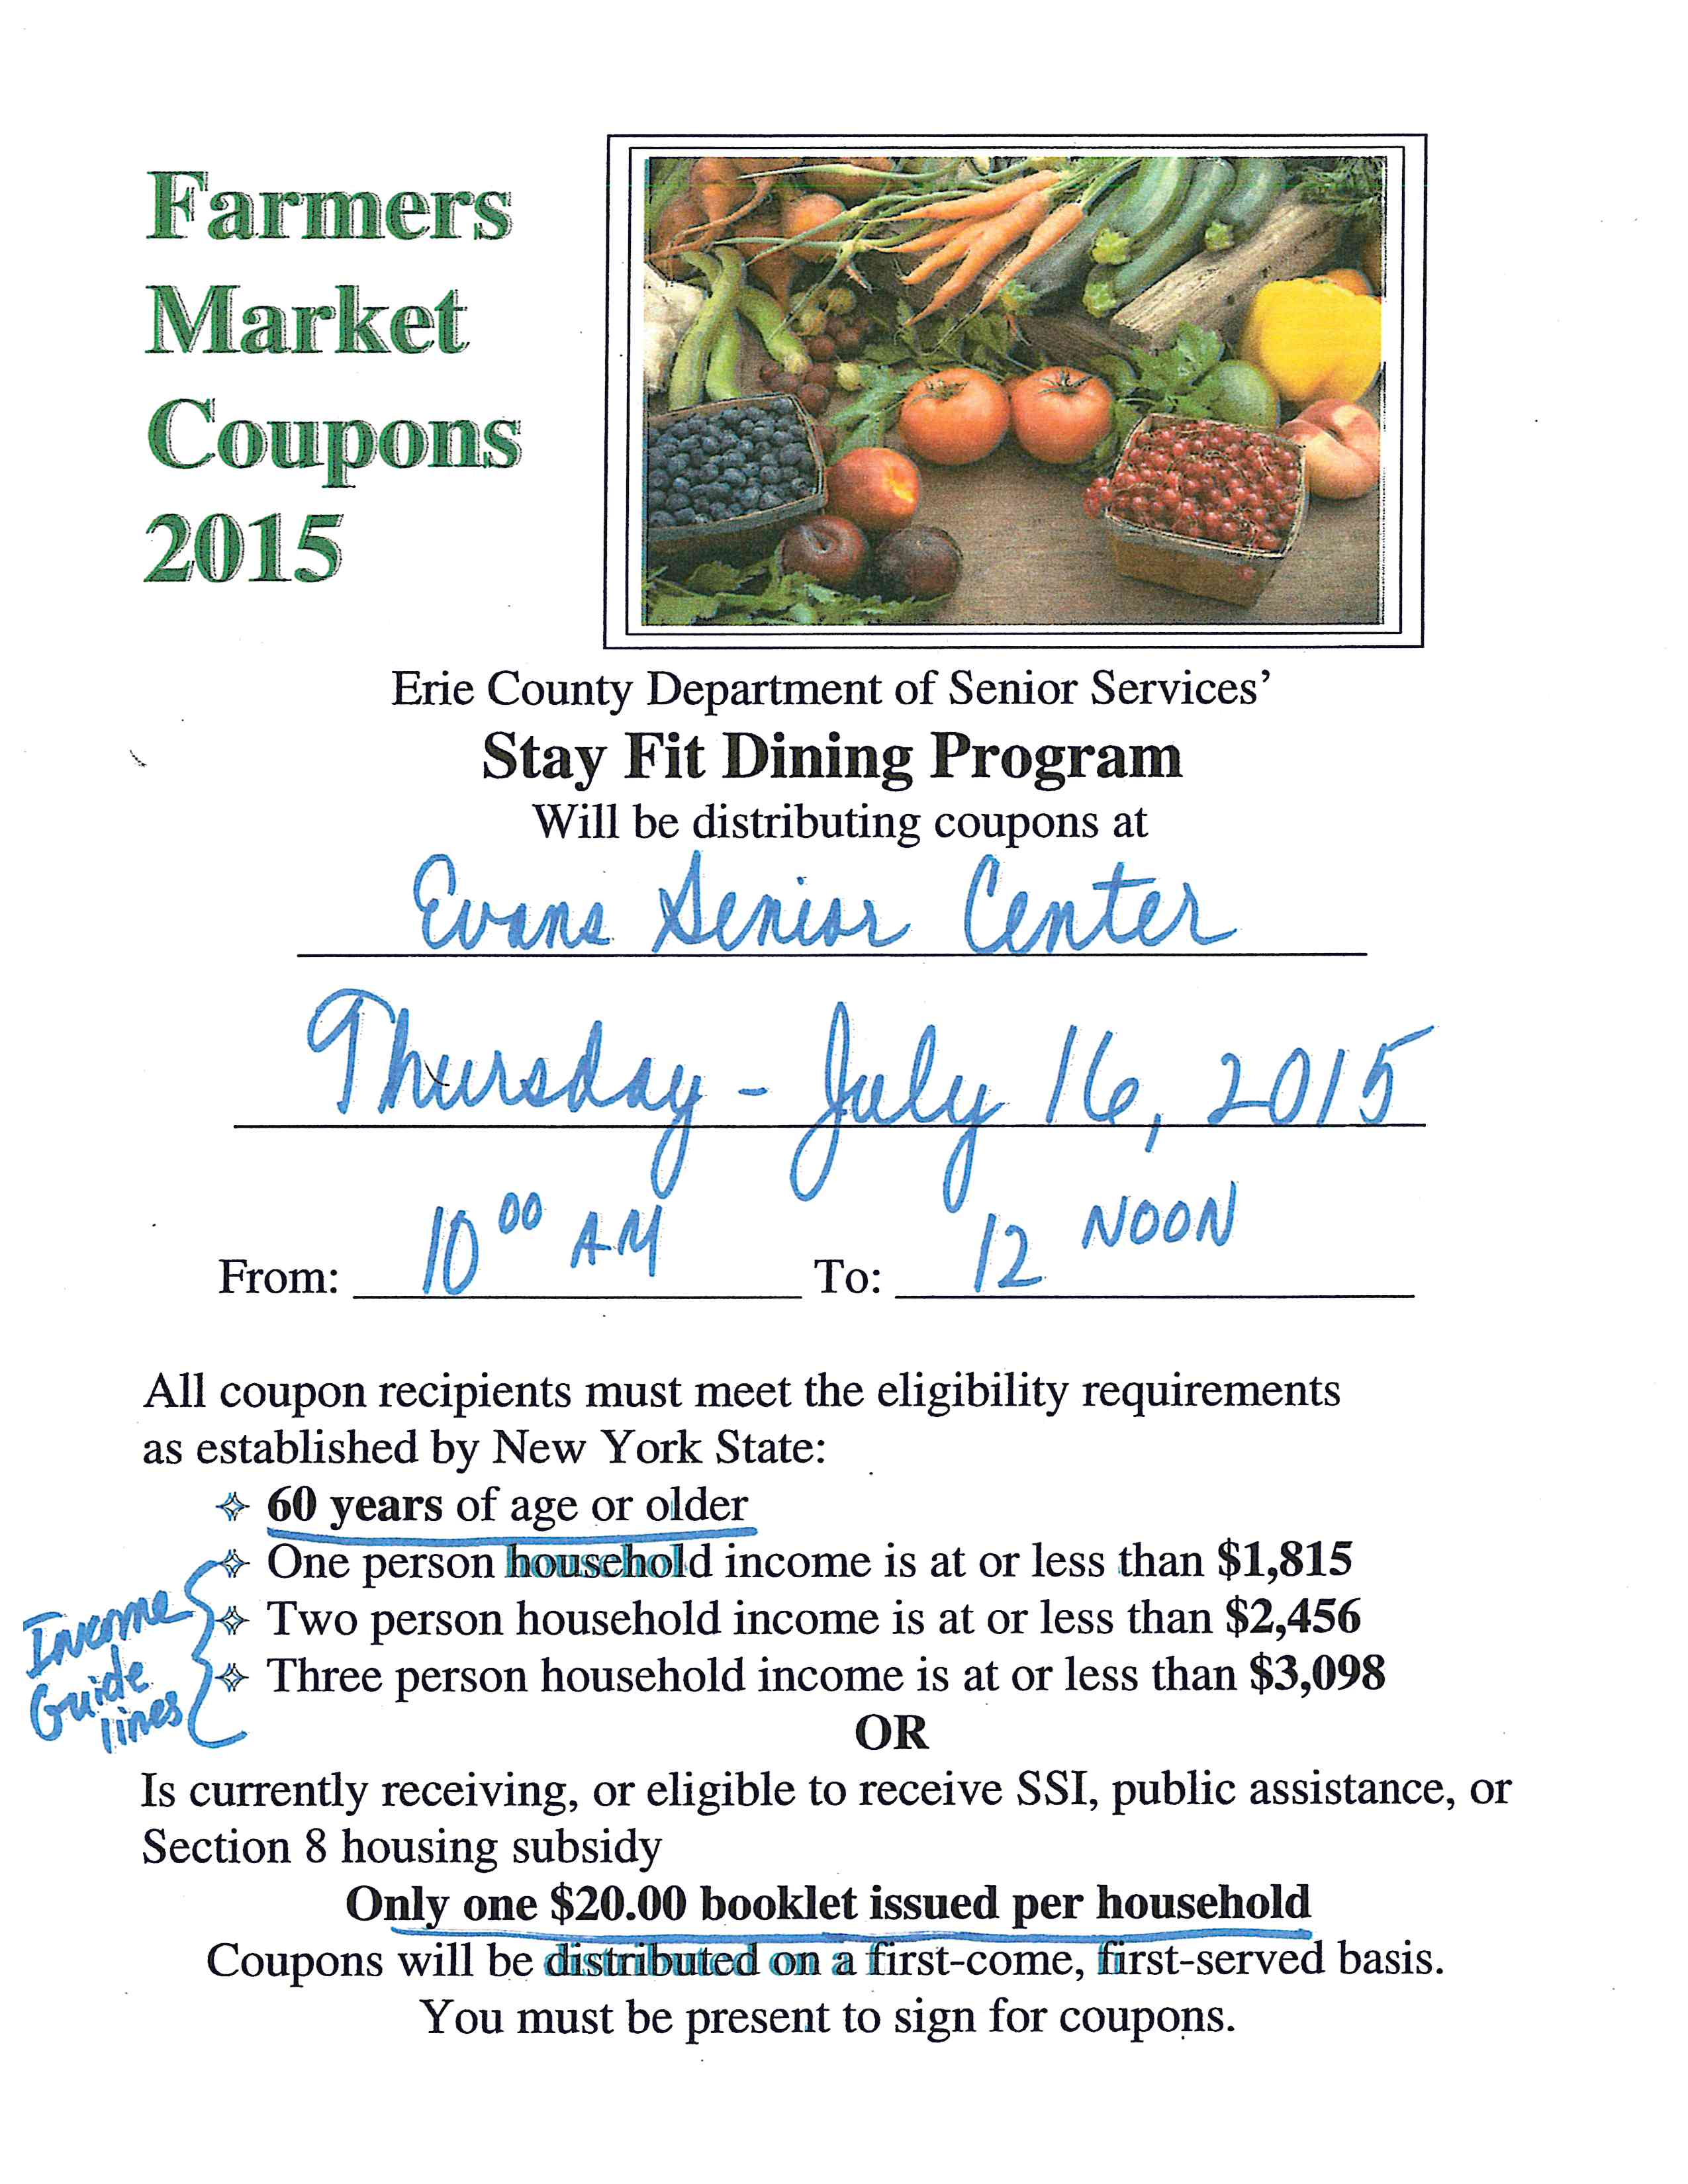 Farmers Market Coupons 2015